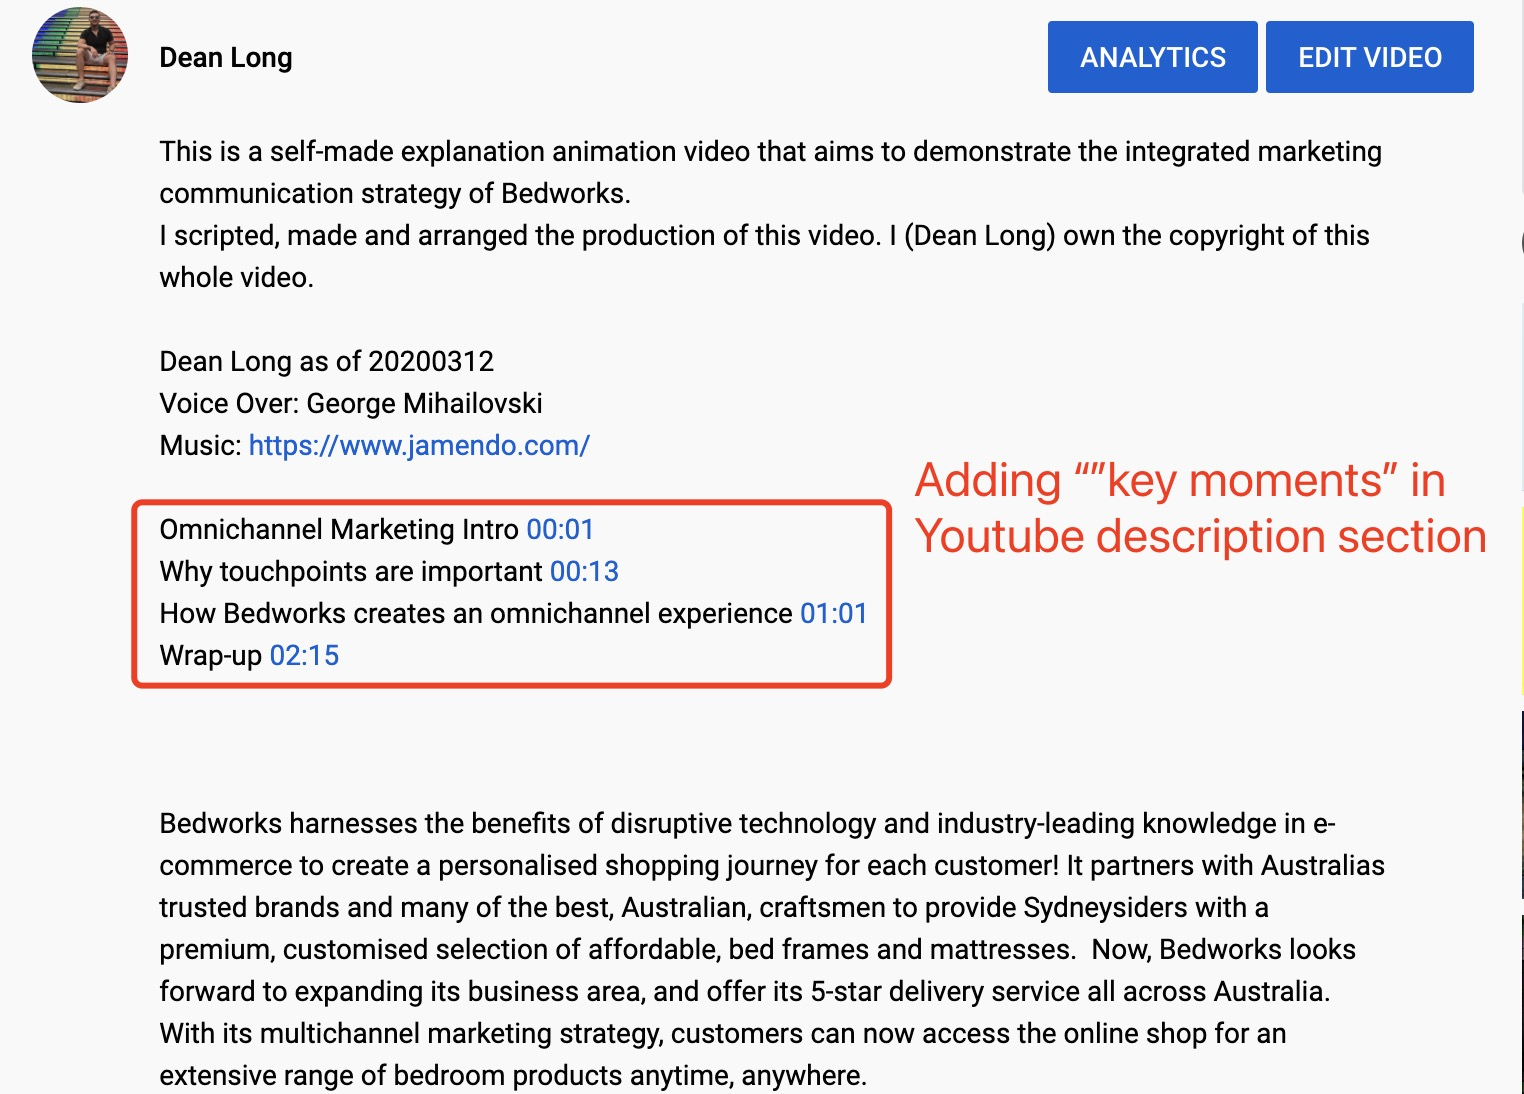 Adding YouTube Timestamp Links in My Video Description | DEANLONG.io